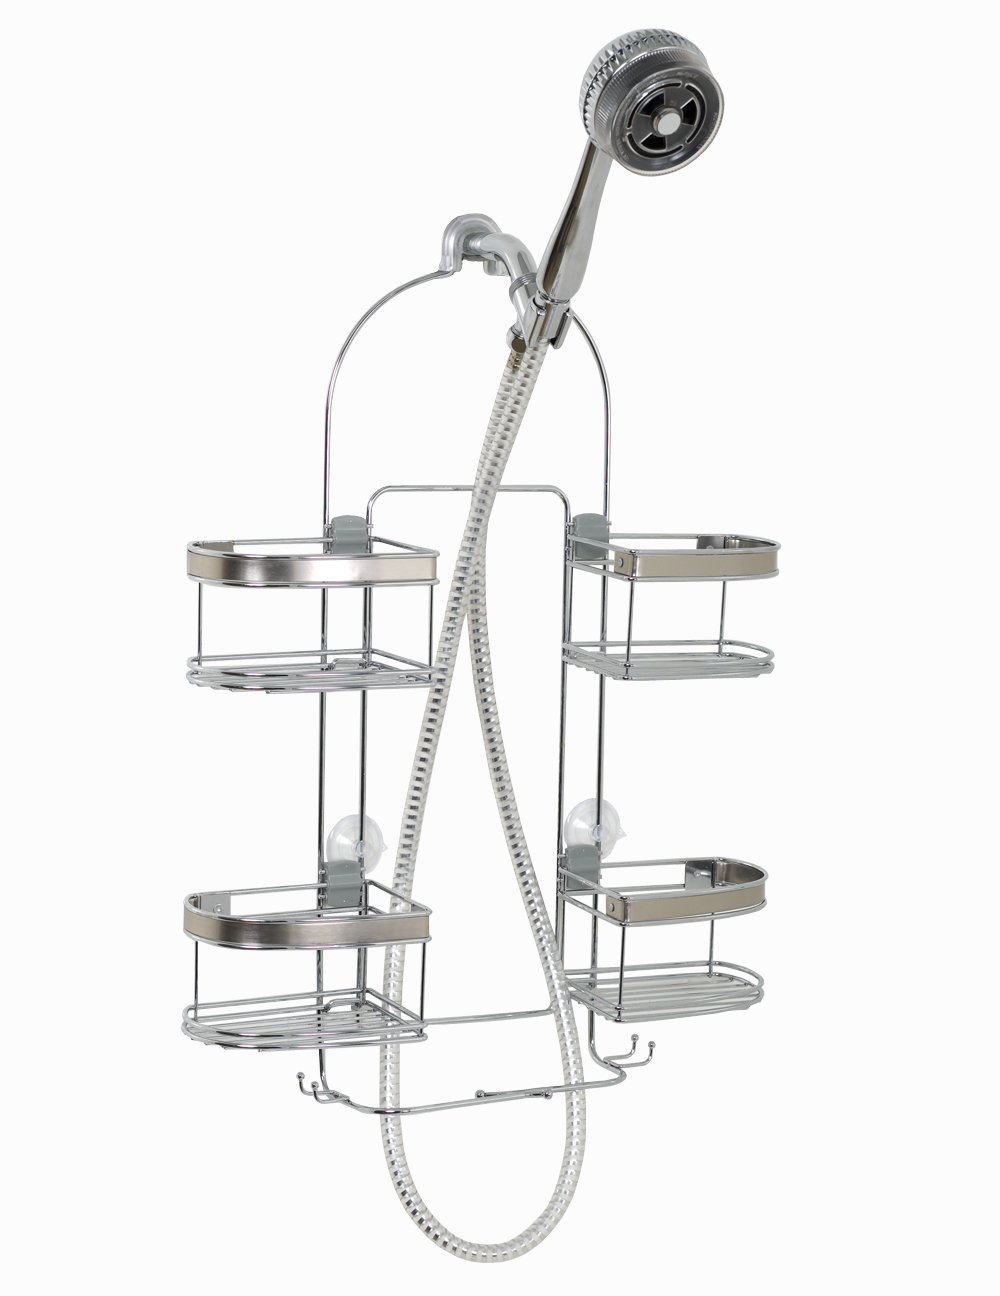 Amazon.com: Zenna Home 7546NSP, Expandable Over-the-Showerhead Caddy ...